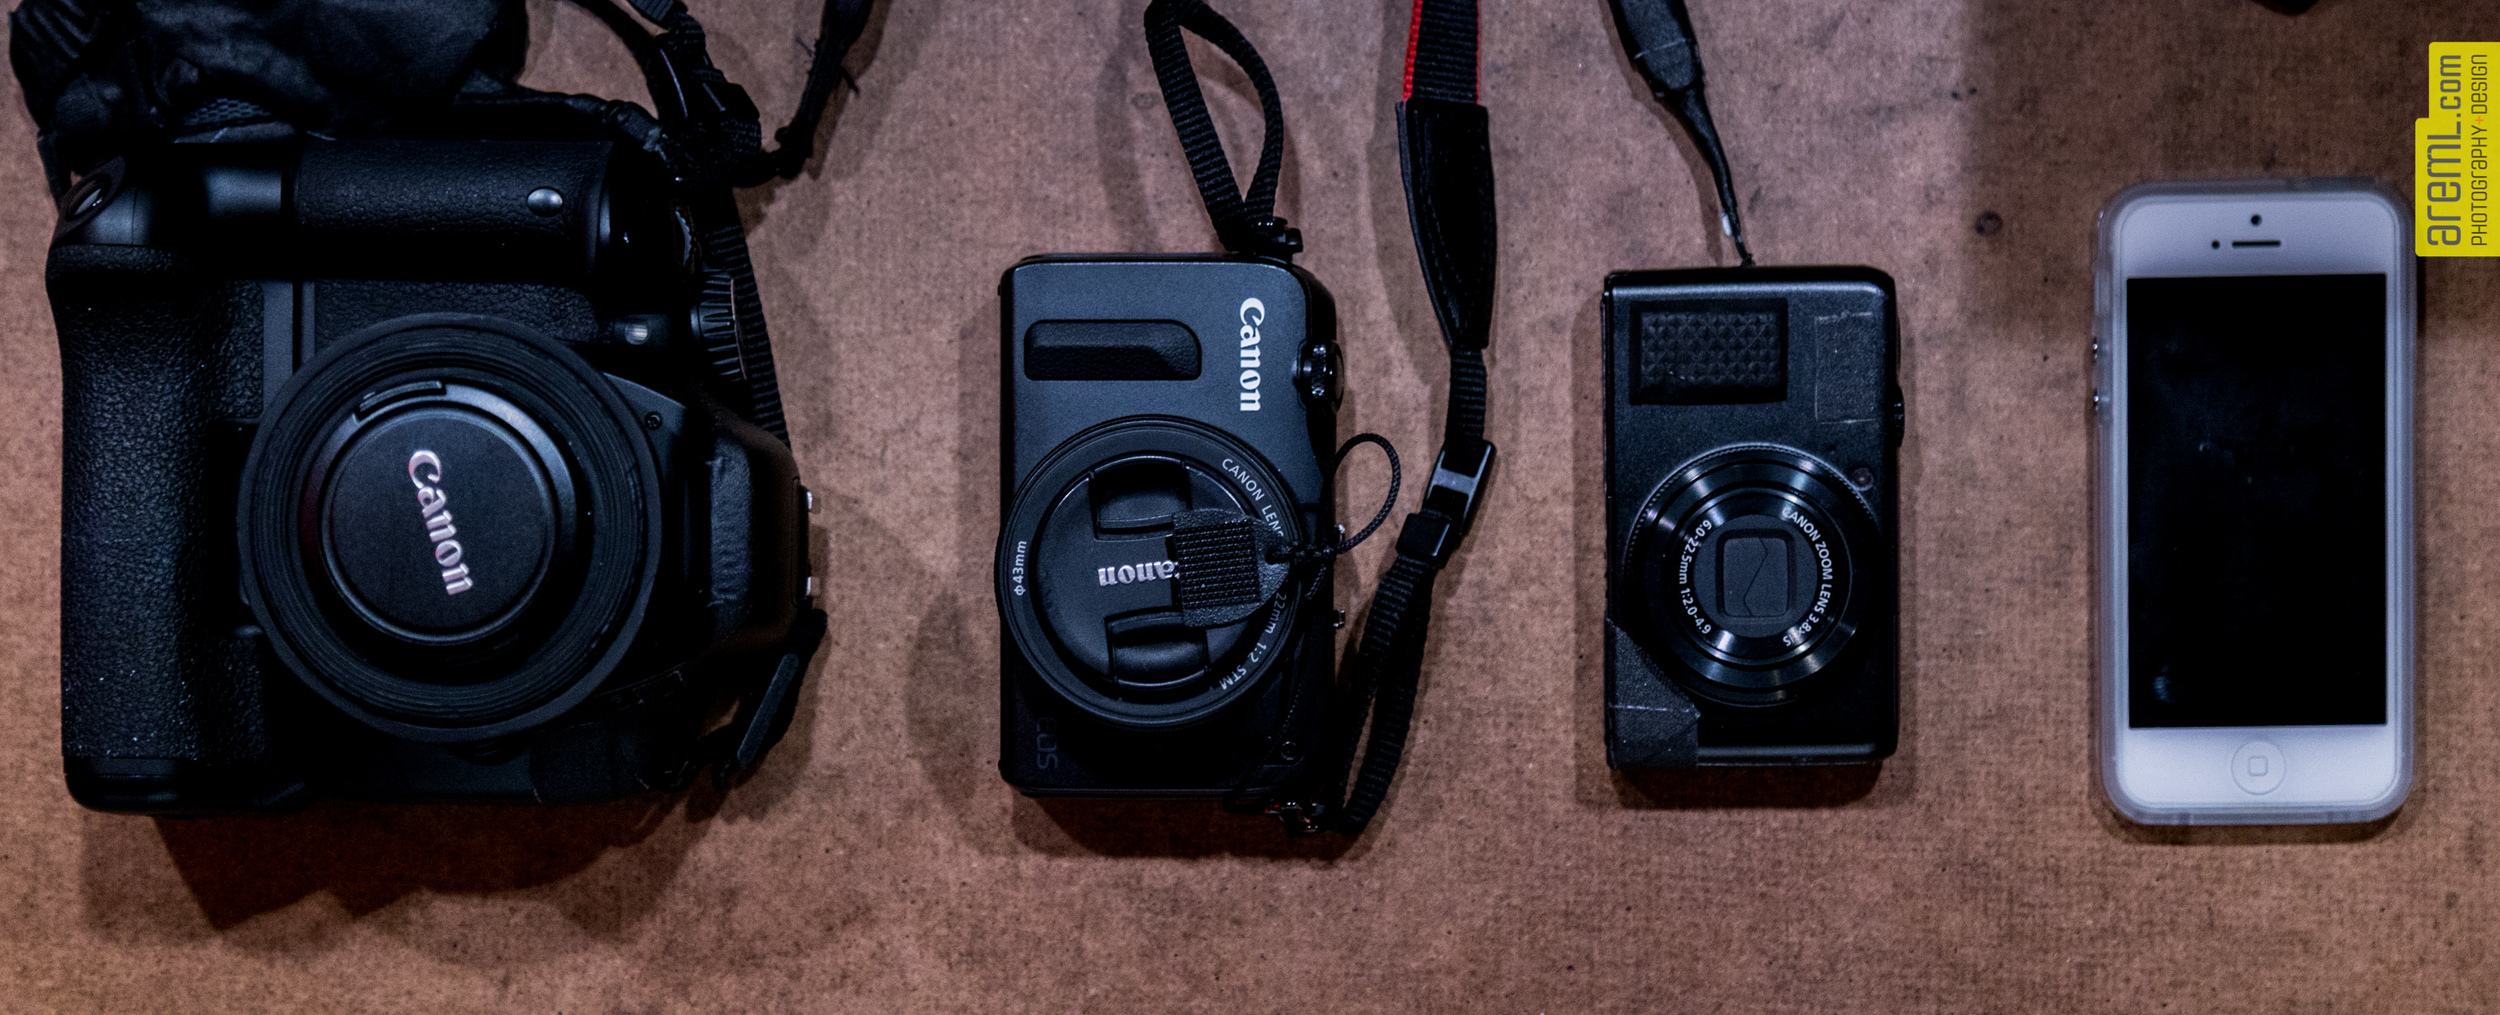 Starting on the left: Canon EOS T2i with 40mm pancake, EOS M w 22mm, Canon Powershot s90 and my iPhone 5.